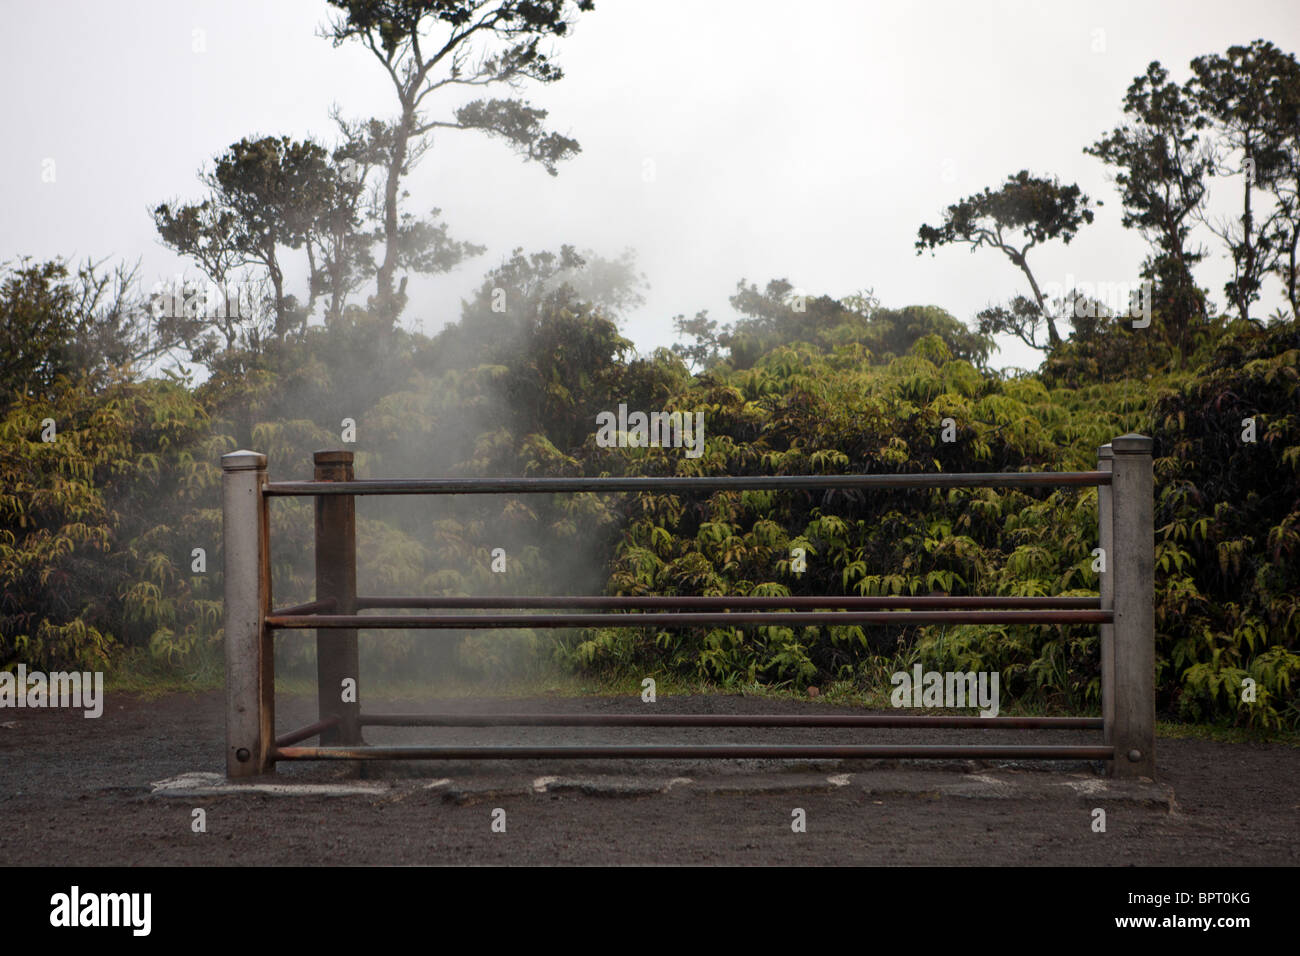 Steam vents, Hawaii Volcanoes National Park, The Big Island, Hawaii, United States of America - Stock Image